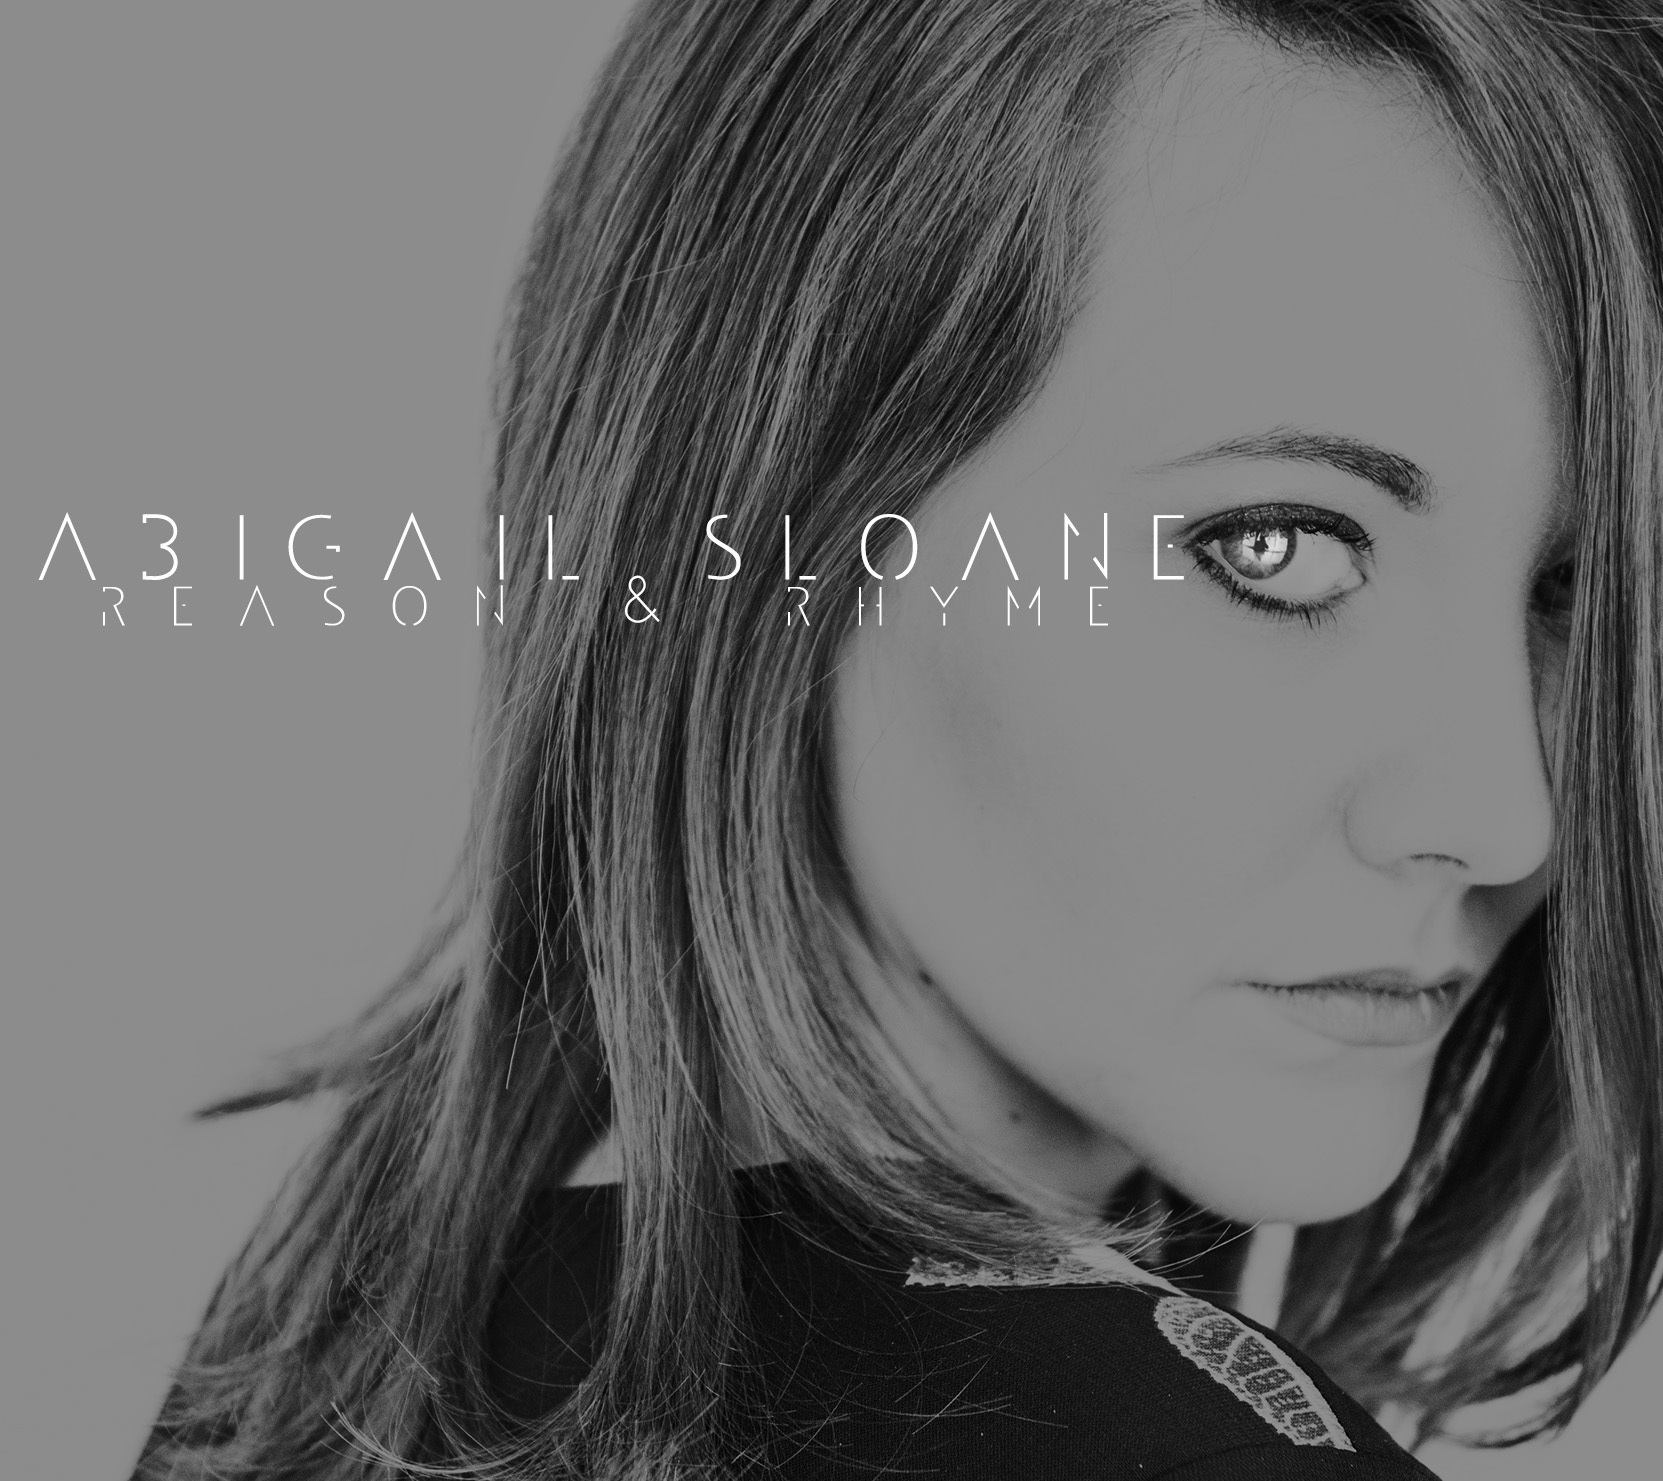 ABIGAIL SLOANE RELEASES DEBUT RADIO SINGLE